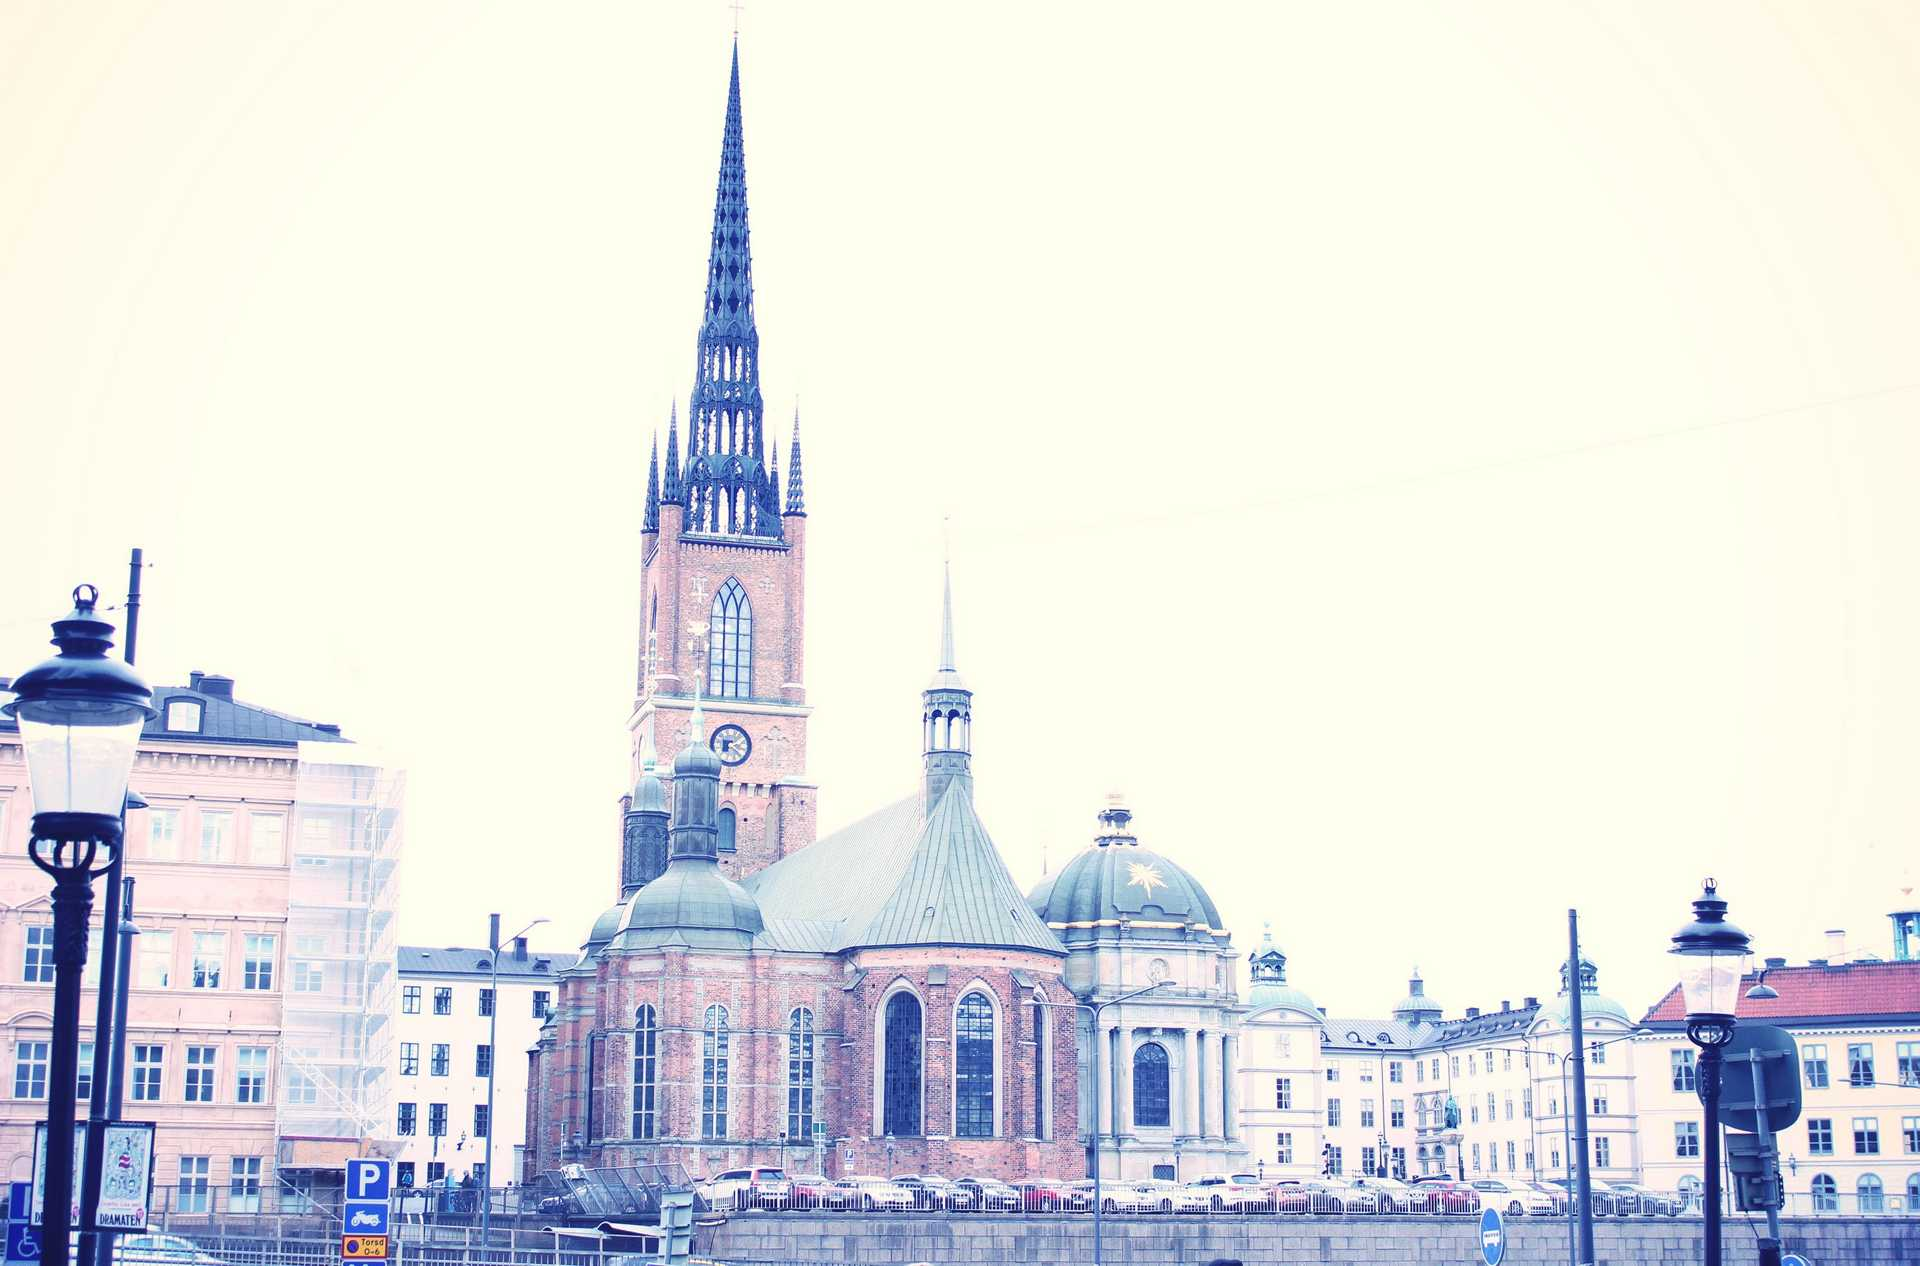 Stockholm-day-2-visit-europe-nunaavane-haircare-beauty-blogger5.JPG_effected